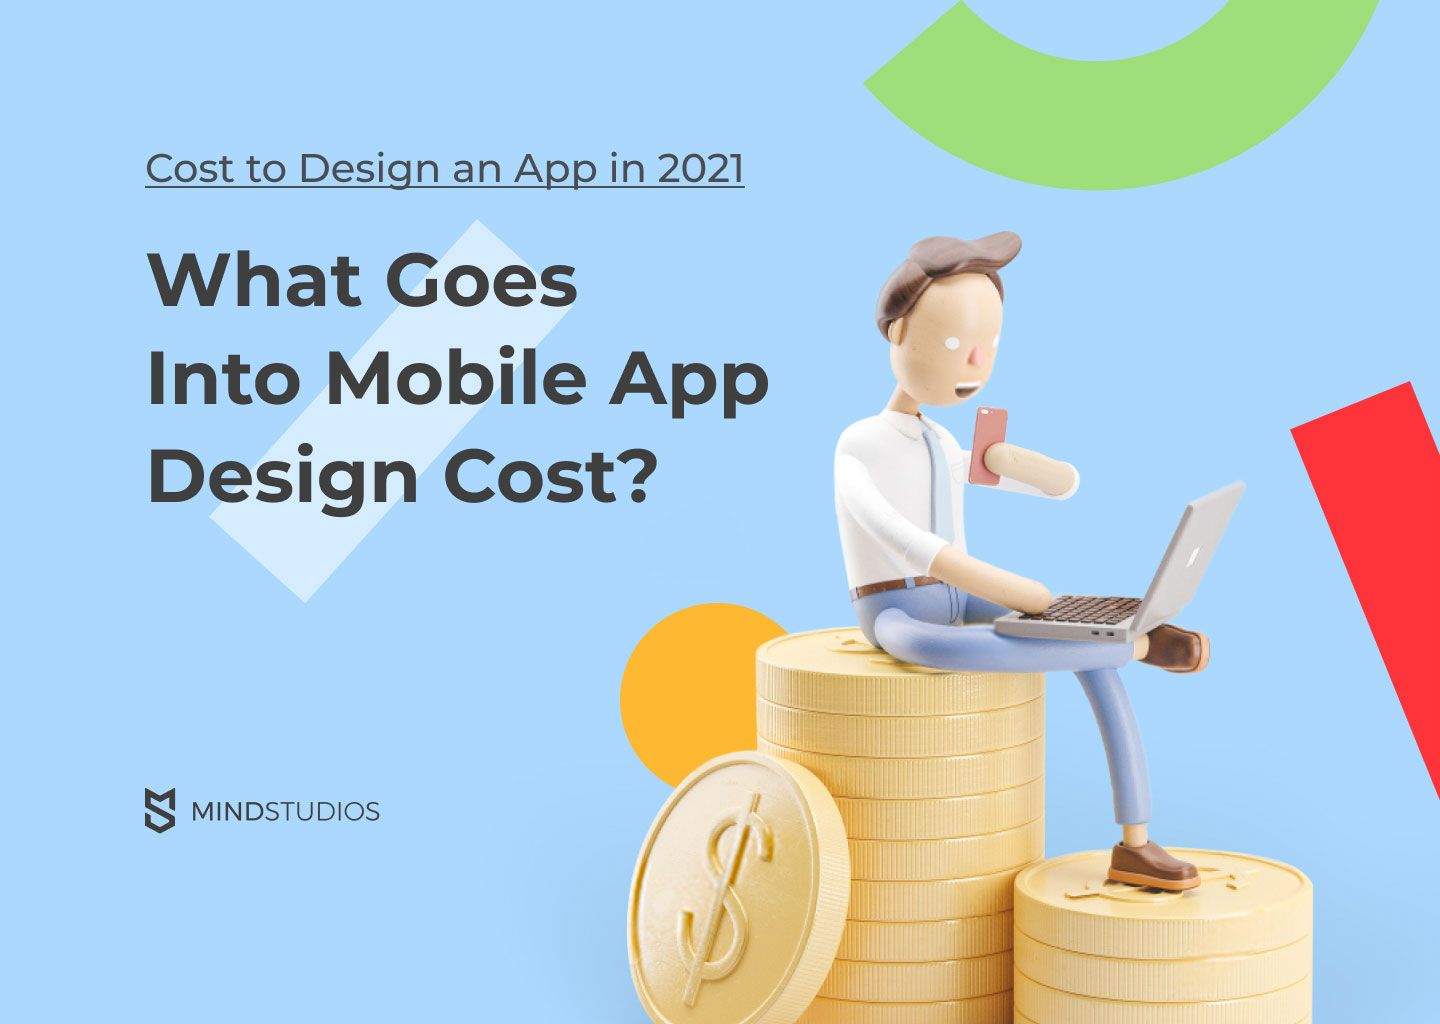 Cost to Design an App in 2021: What Goes into the Cost of Mobile App Design?